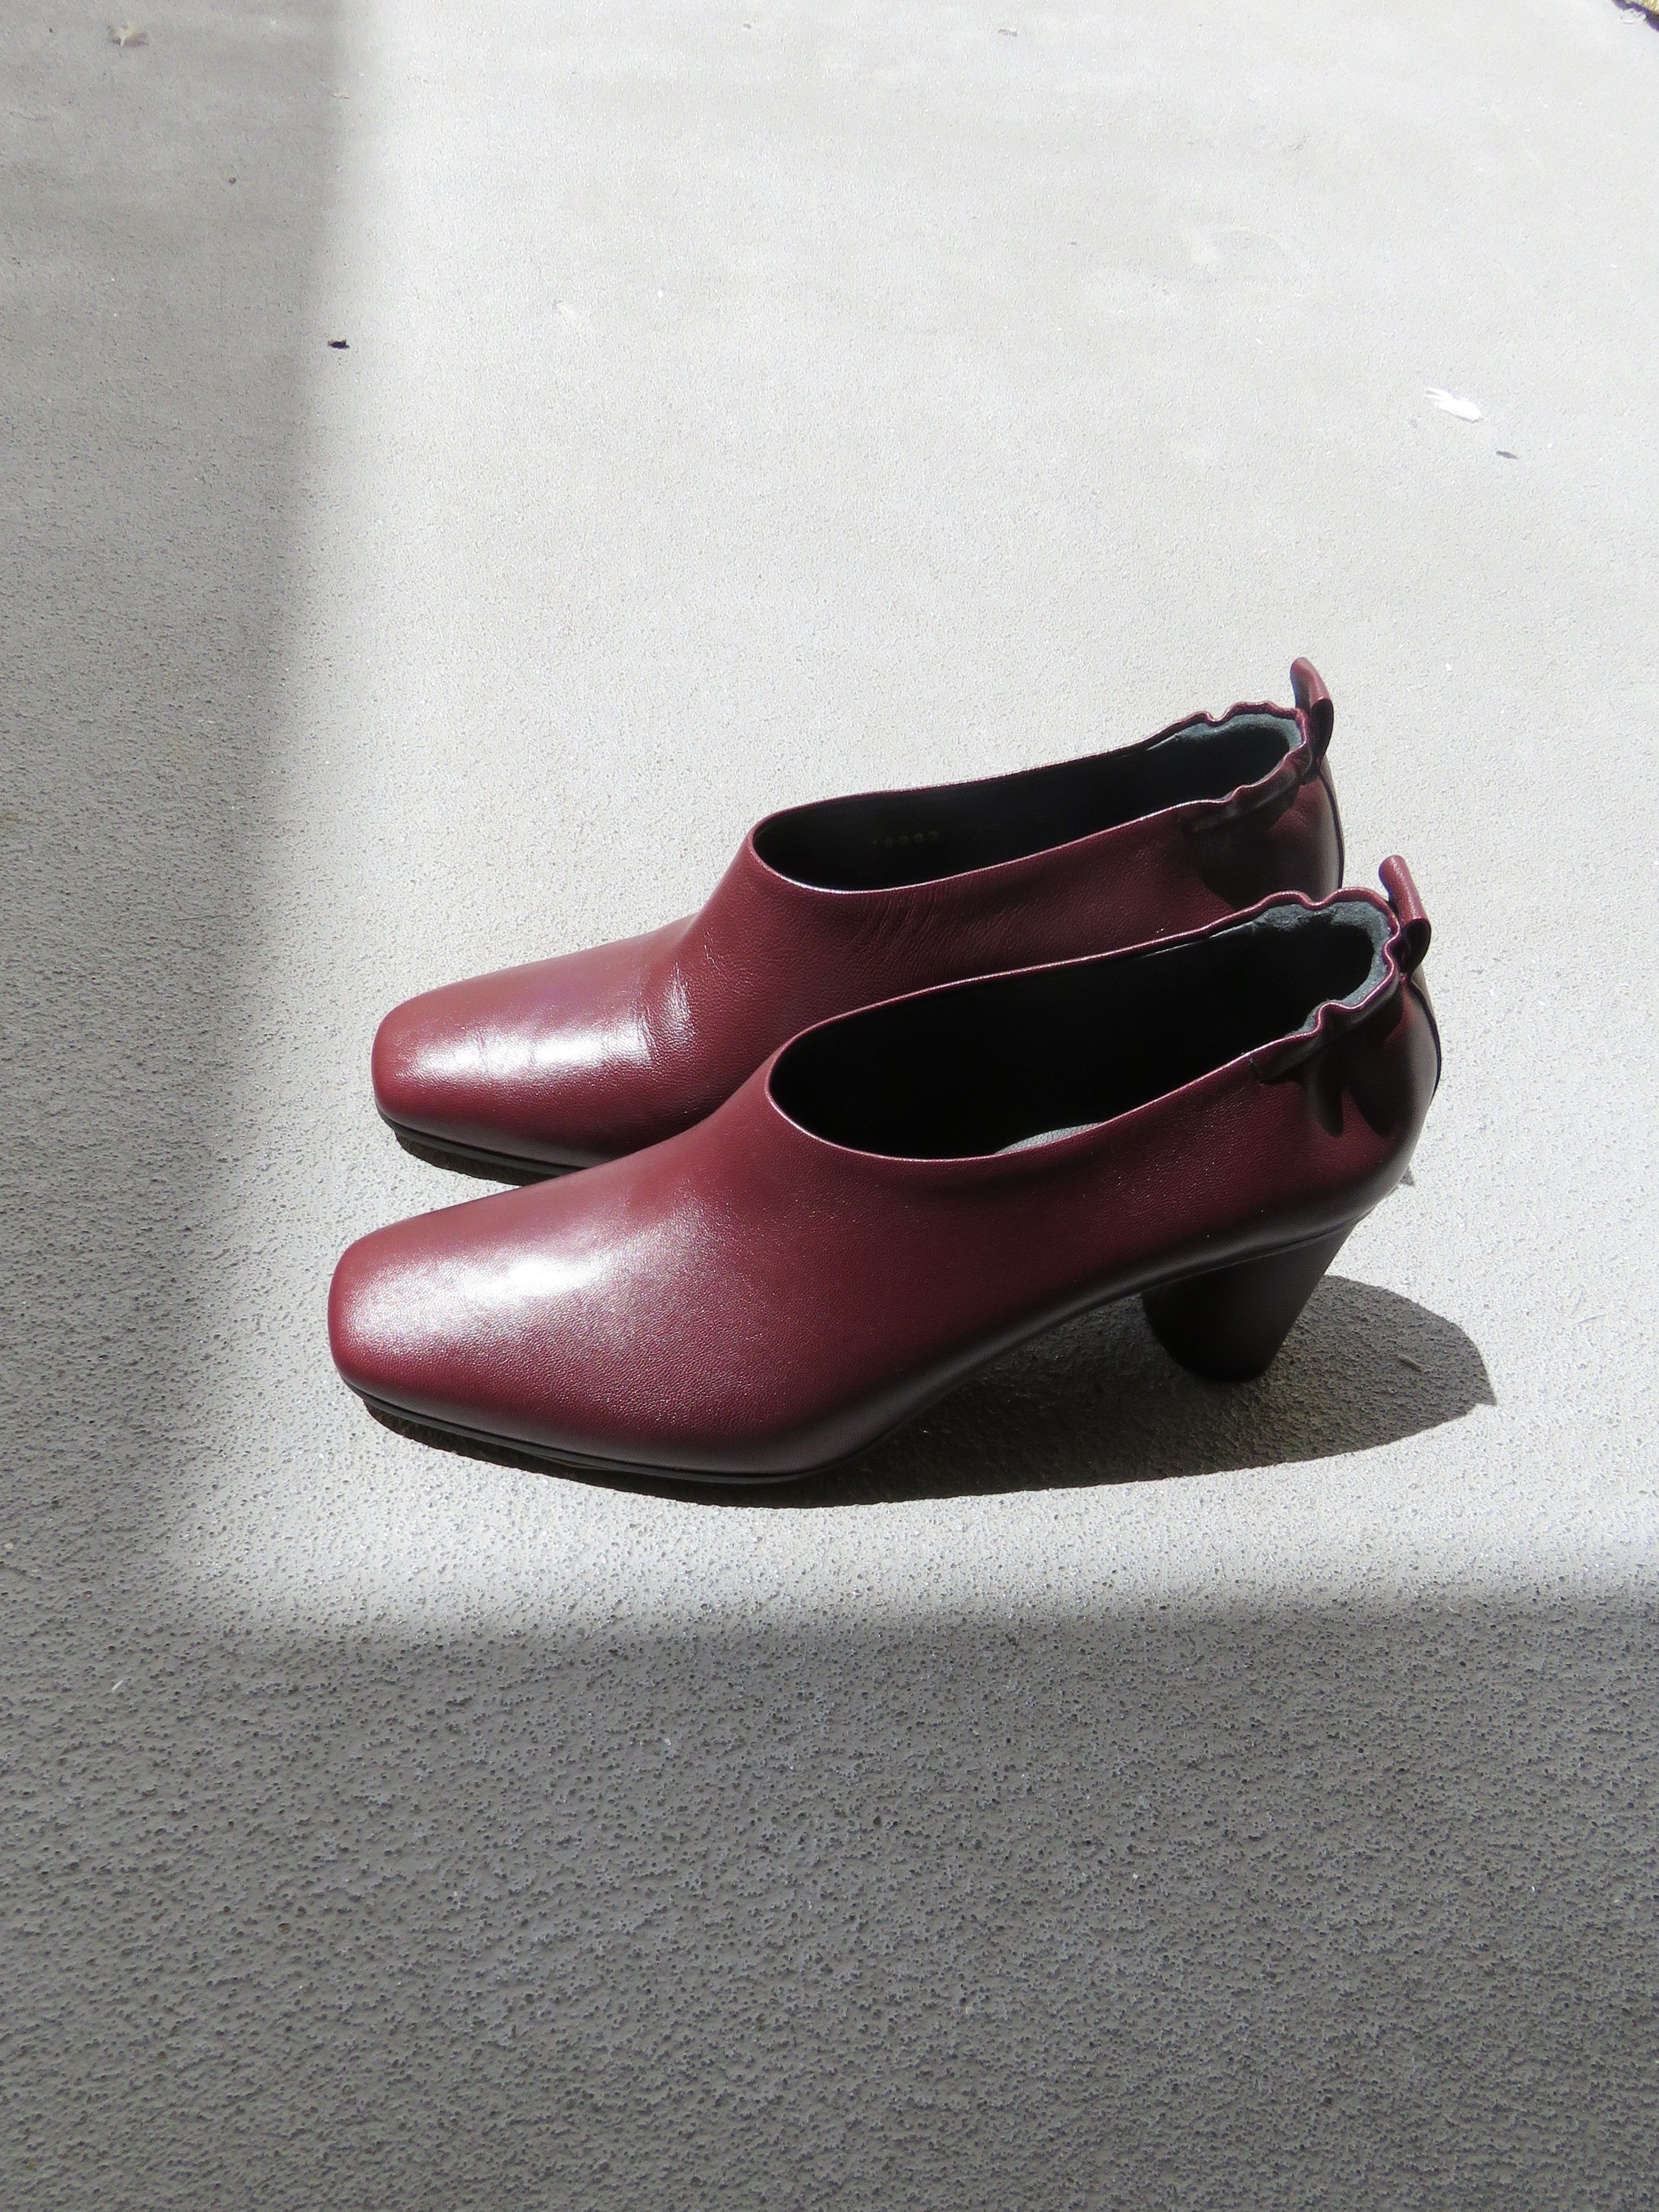 289b6f4cee1 GRAY MATTERS MICOL PUMP - PLUM. Click micol pump to get  20 off your first  purchase at Garmentory!